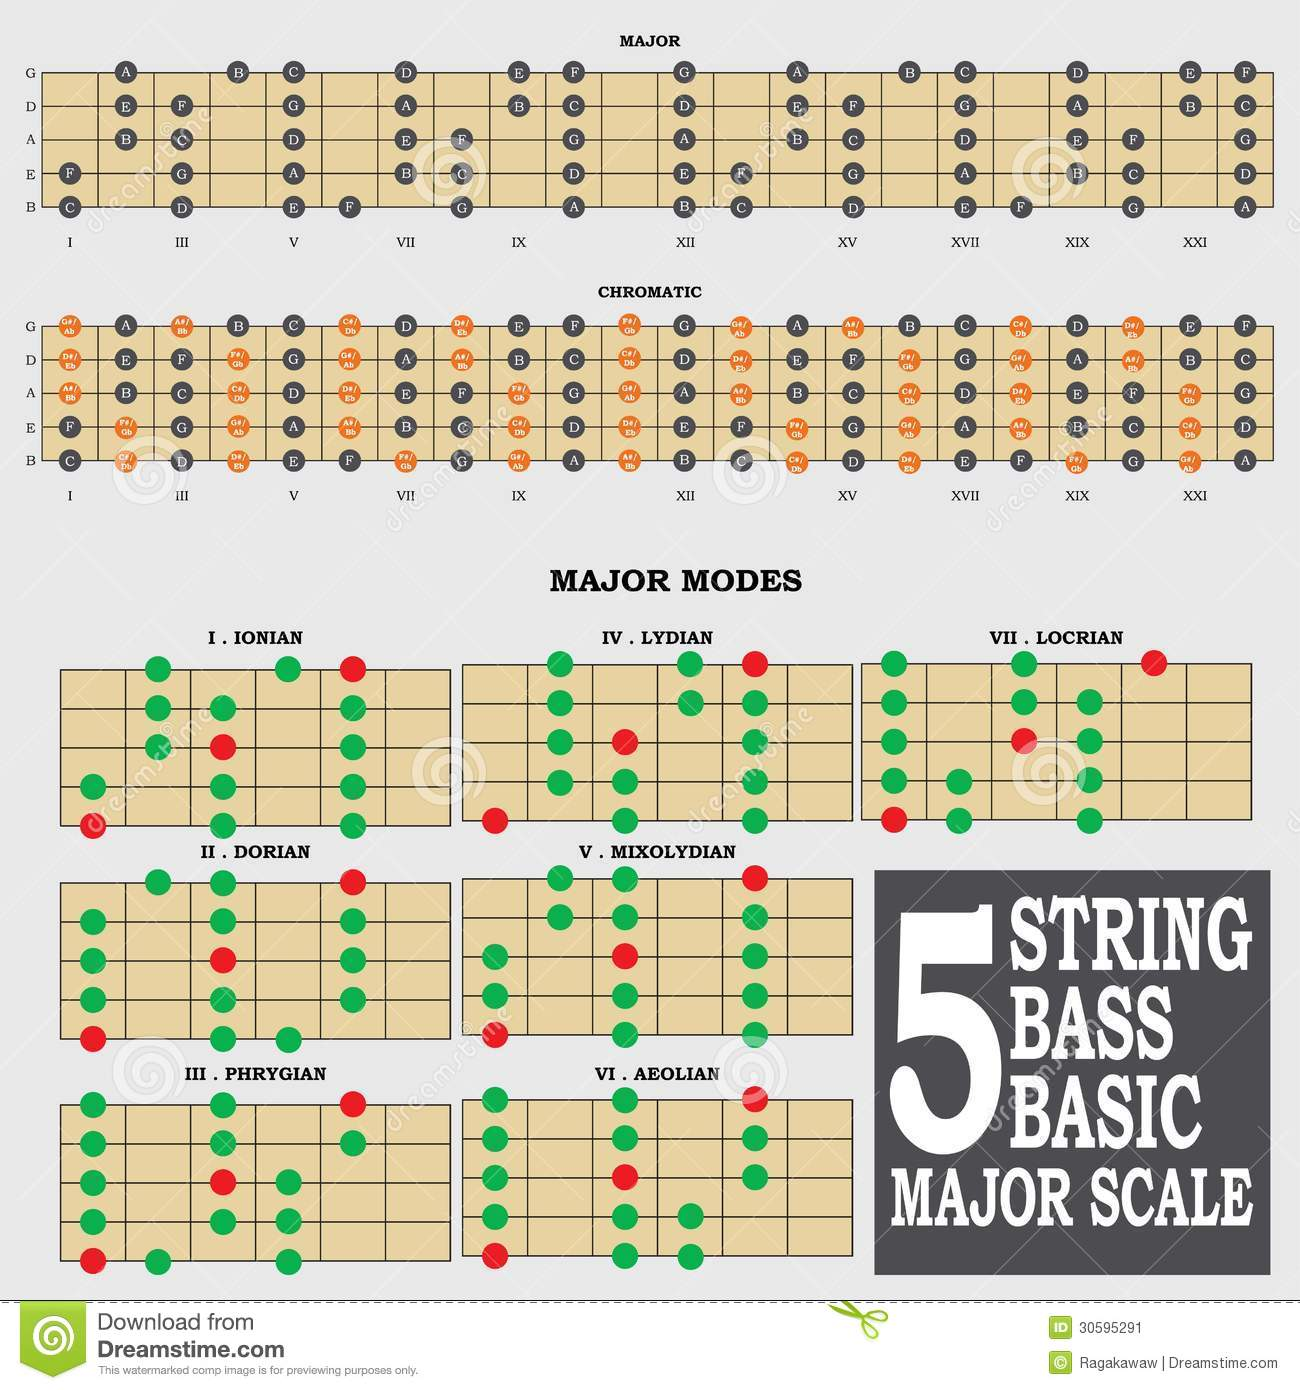 5 string bass basic major scale for bass player te stock image image 30595291. Black Bedroom Furniture Sets. Home Design Ideas